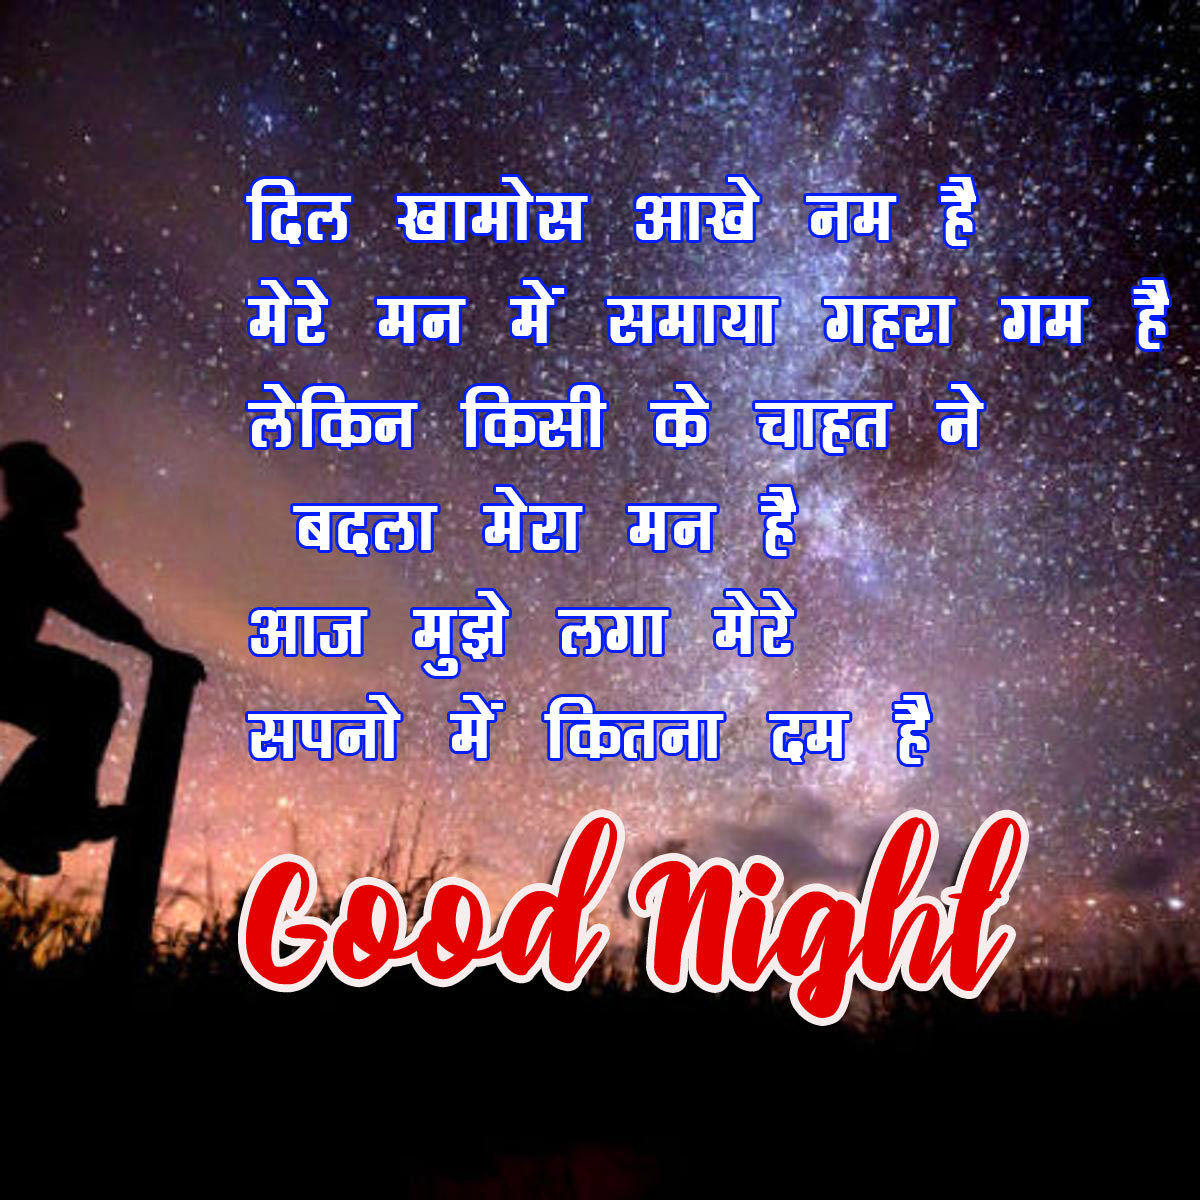 Hindi Shayari Good Night Wallpaper